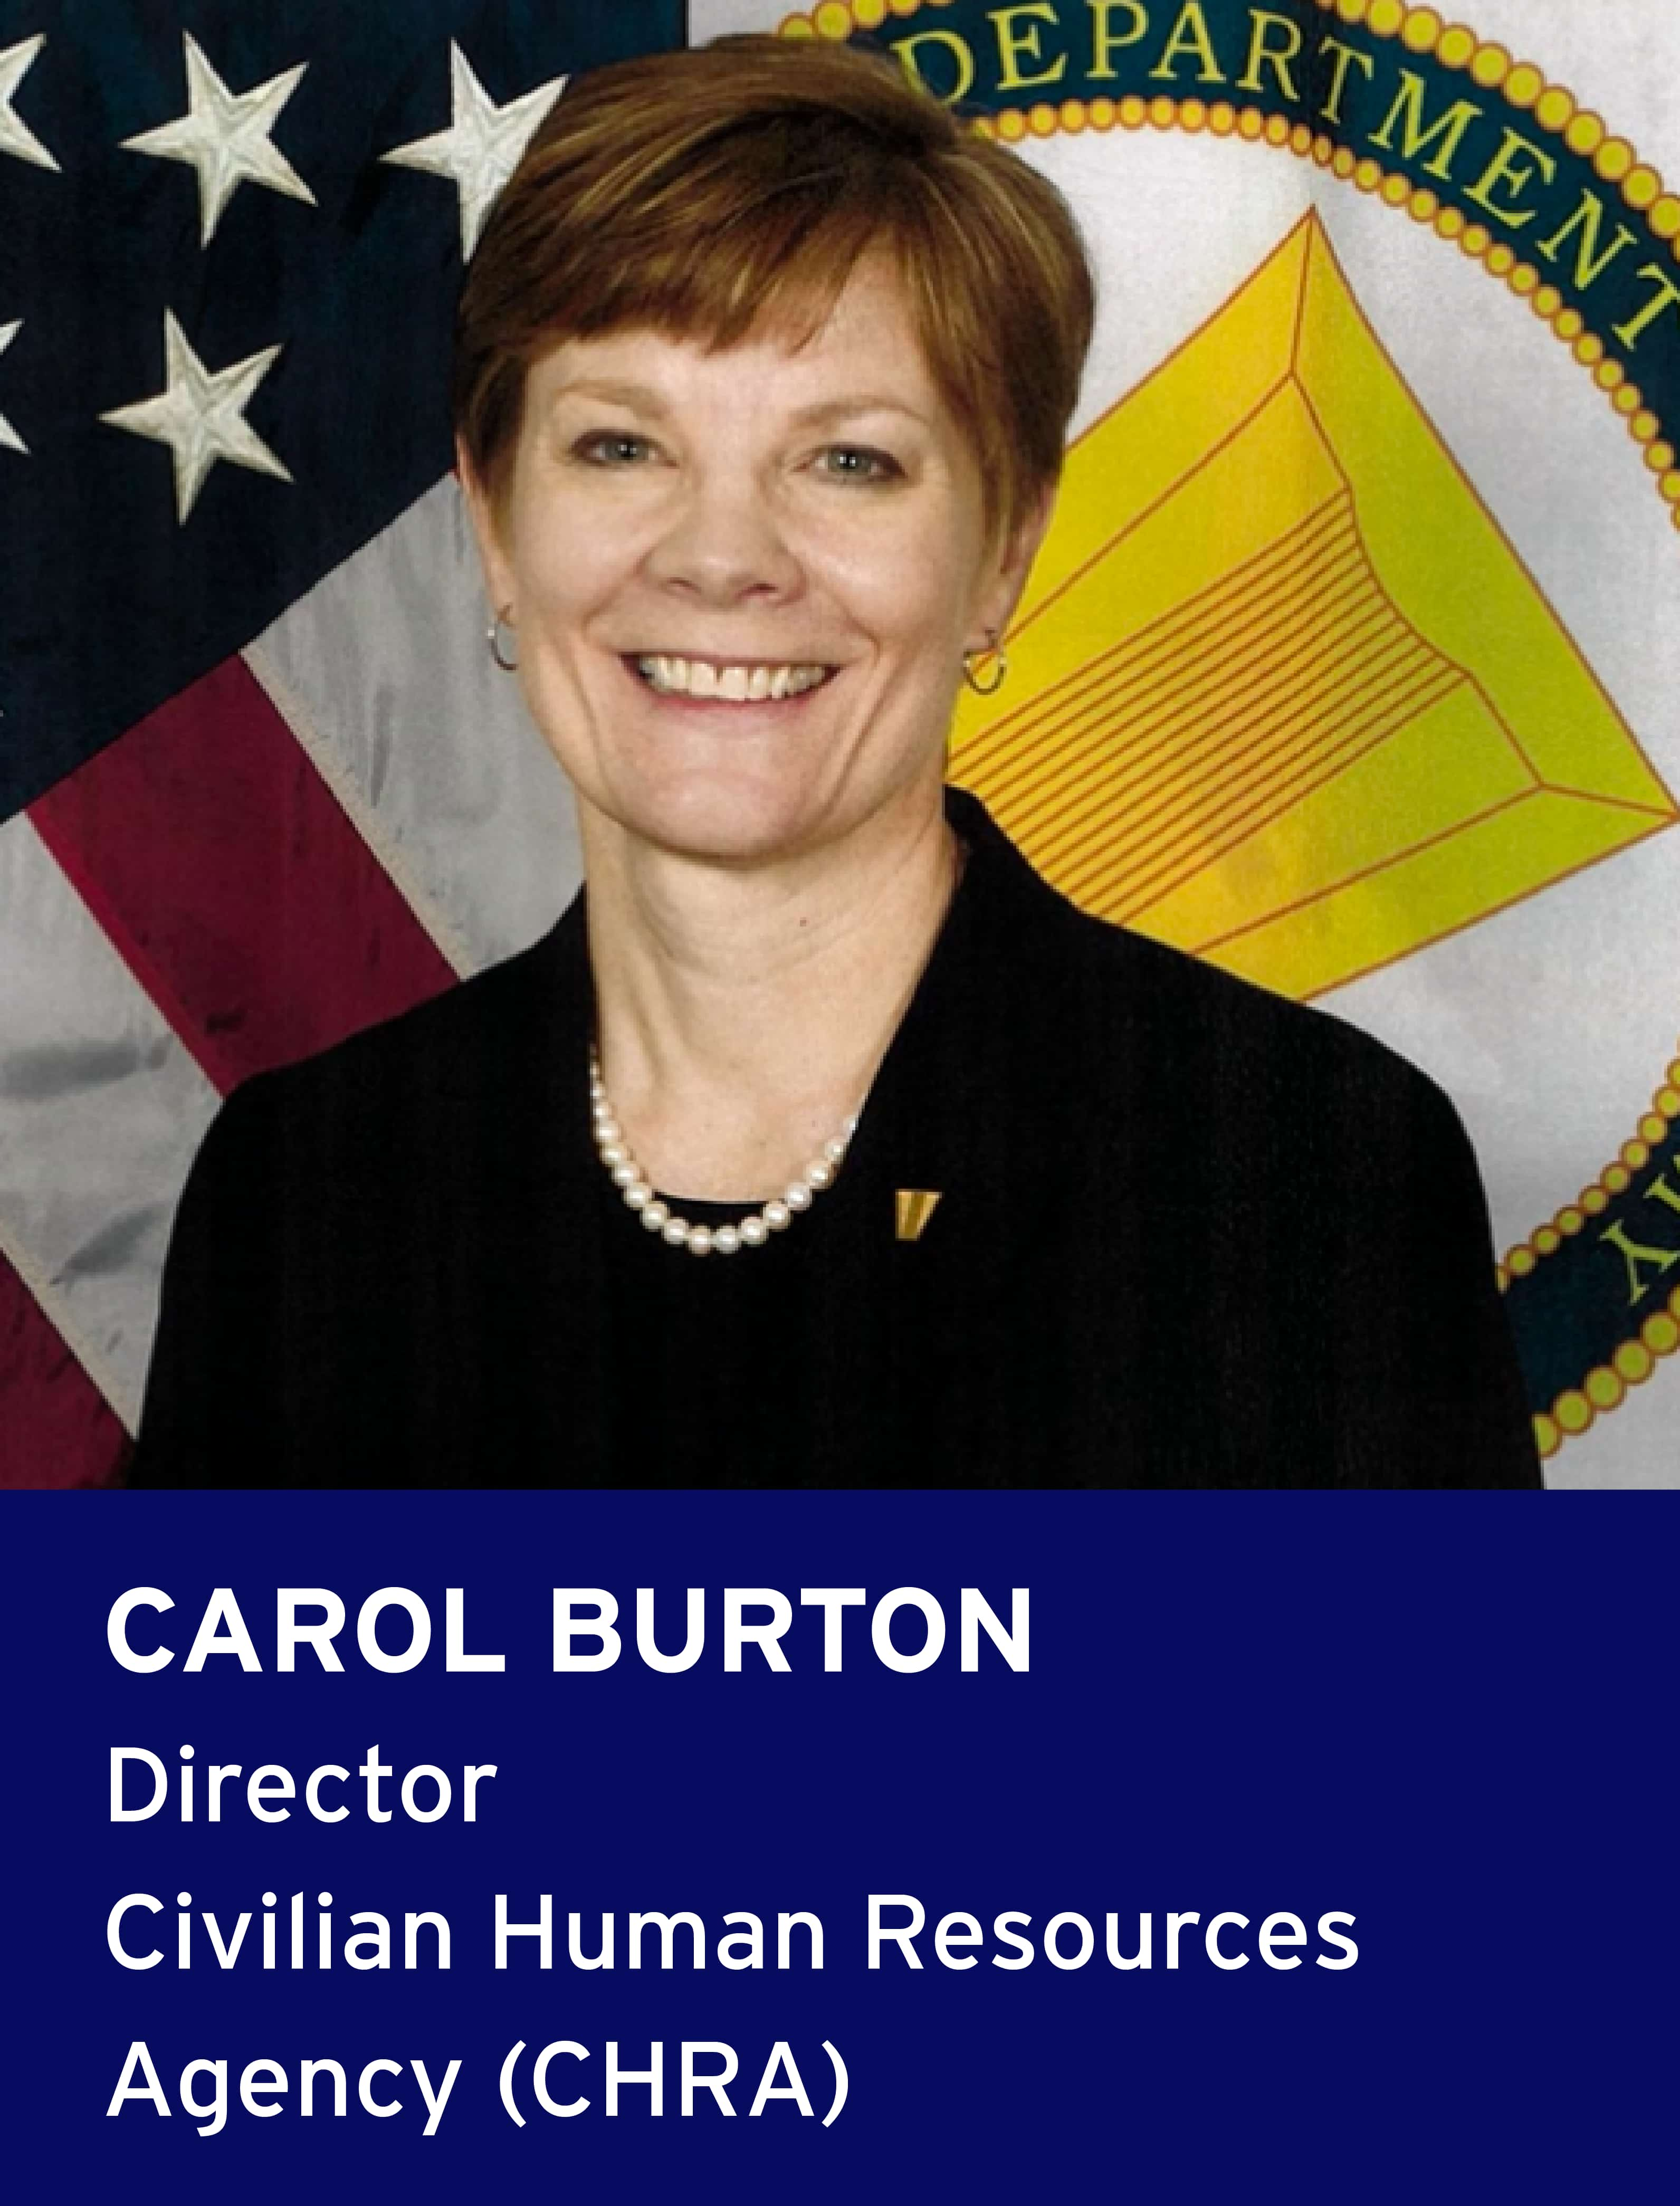 Carol Burton. Director of Civilian Human Resources Agency